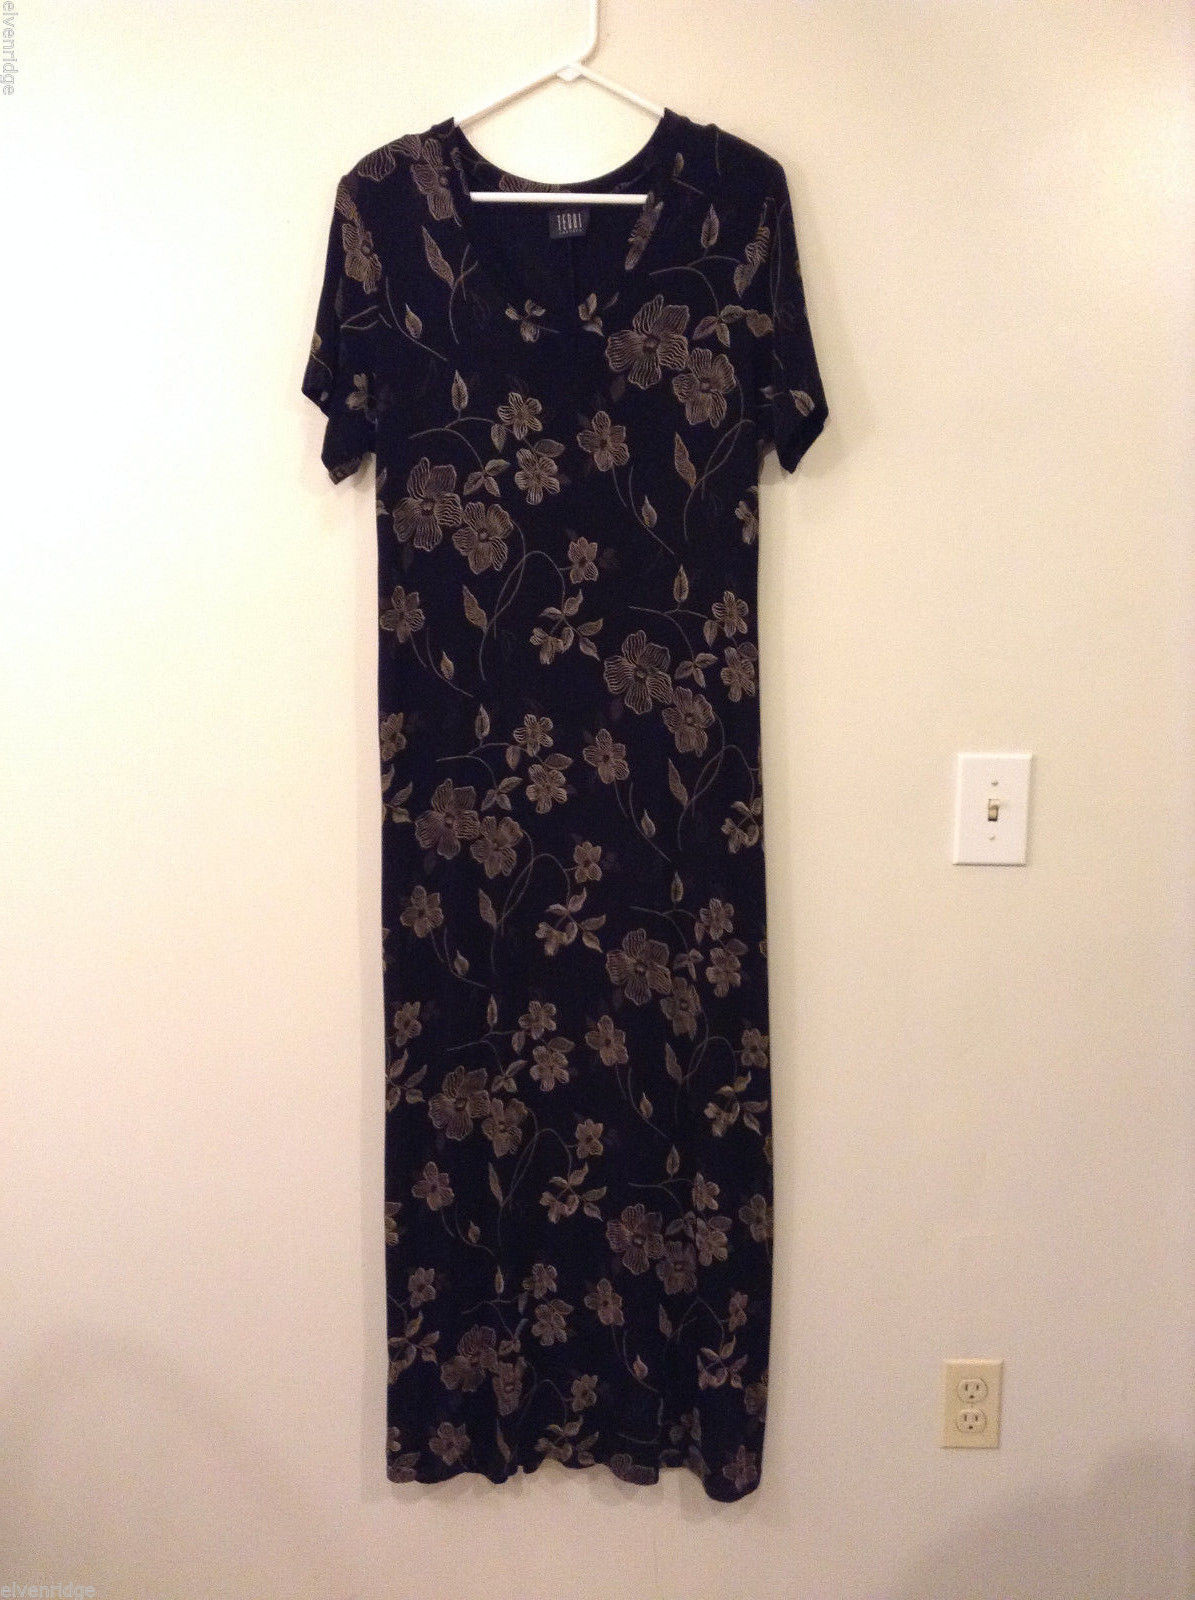 Teddi Dresses Black with Brown Flowers Very Stretchy V-neck Dress, size XL Tall